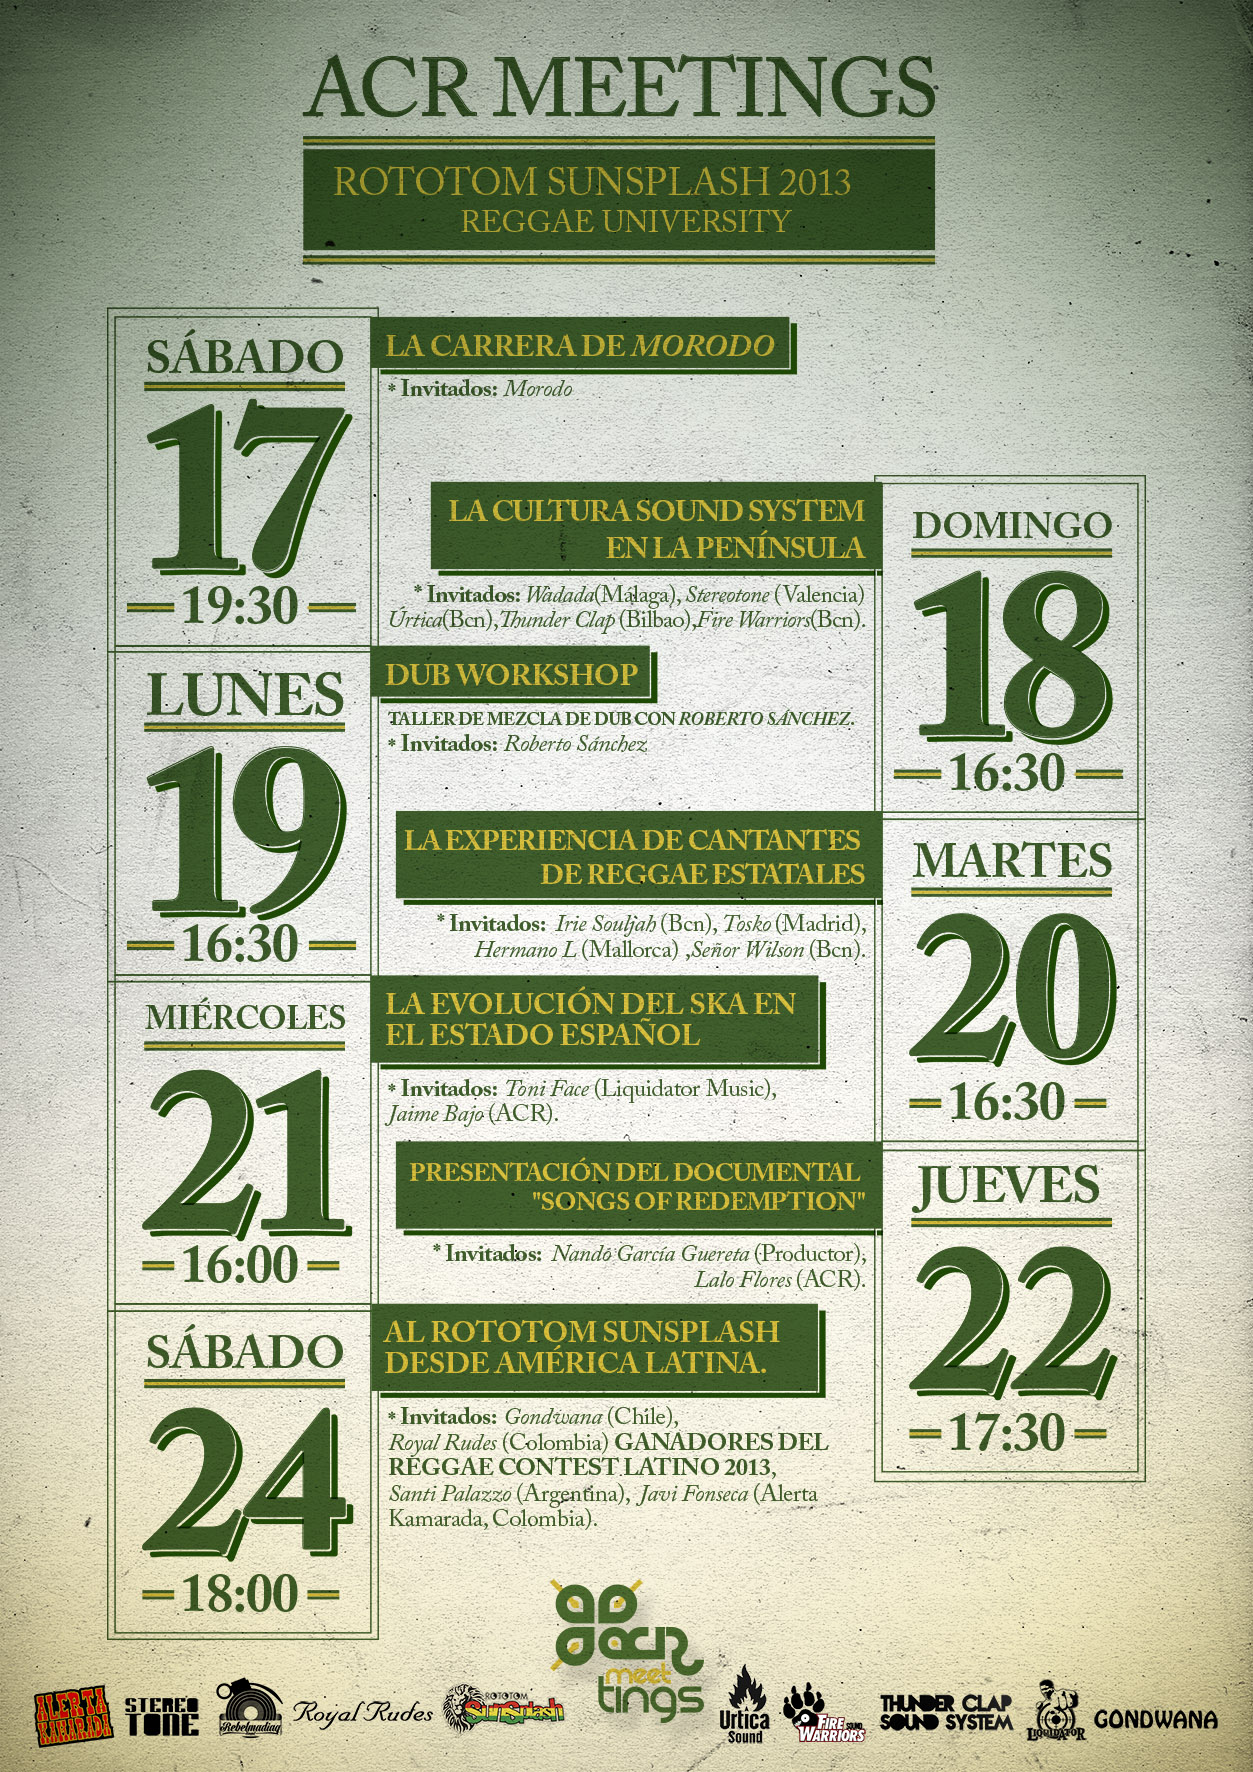 cartel acr meetings 2013 REDES SOCIALES